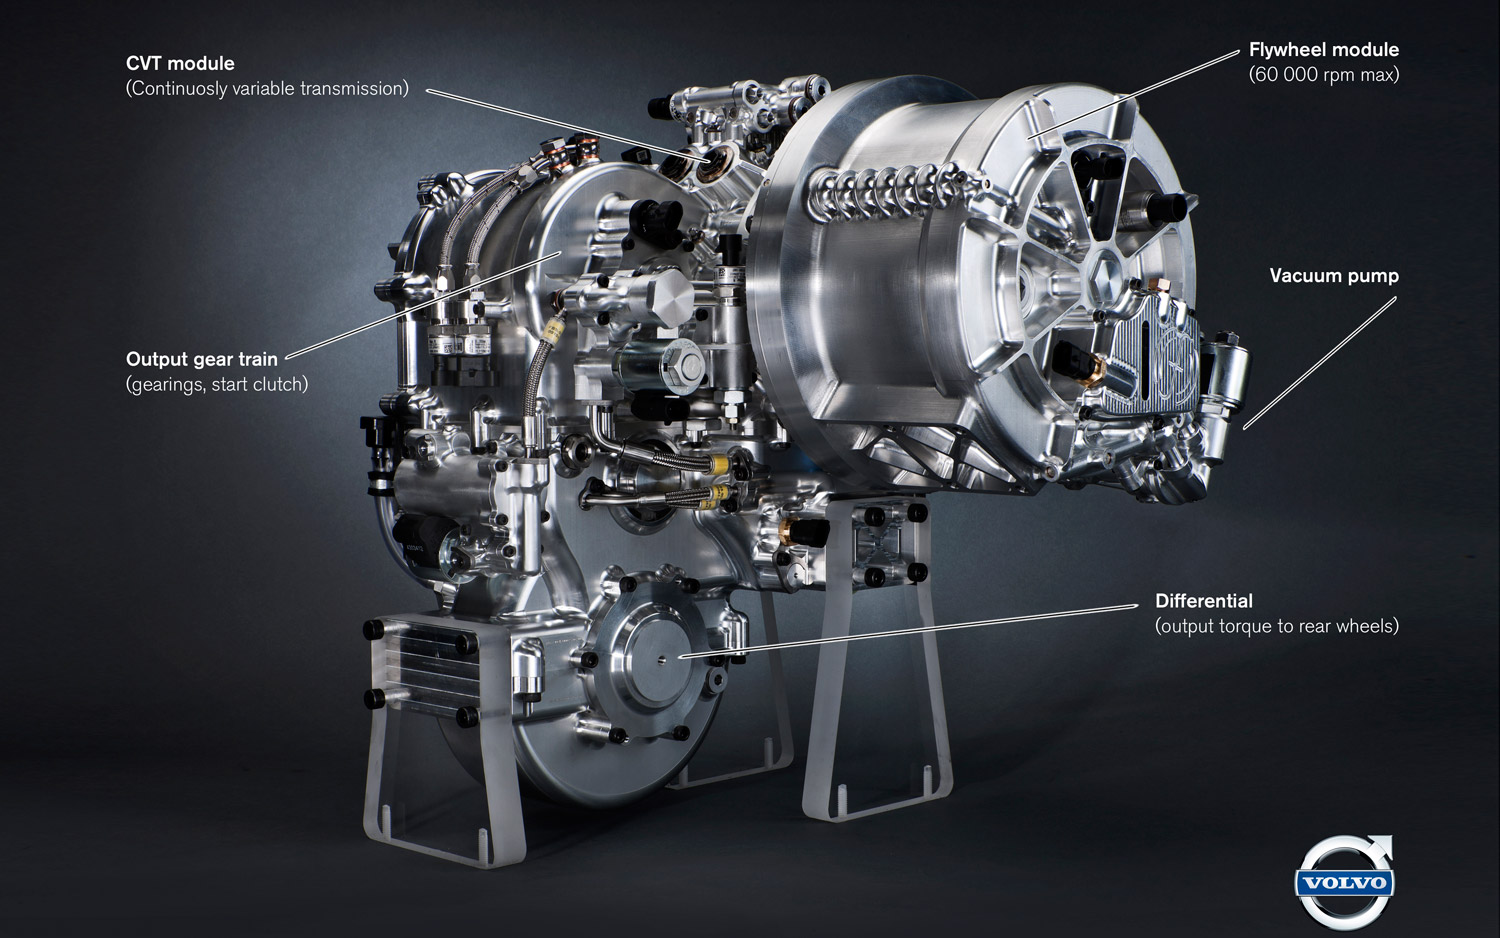 Volvo Kers Flywheel System Boosts Fuel Efficiency By 25 And Will Vacuum Pump Wiring Diagram Look To Put It Into Production Cars